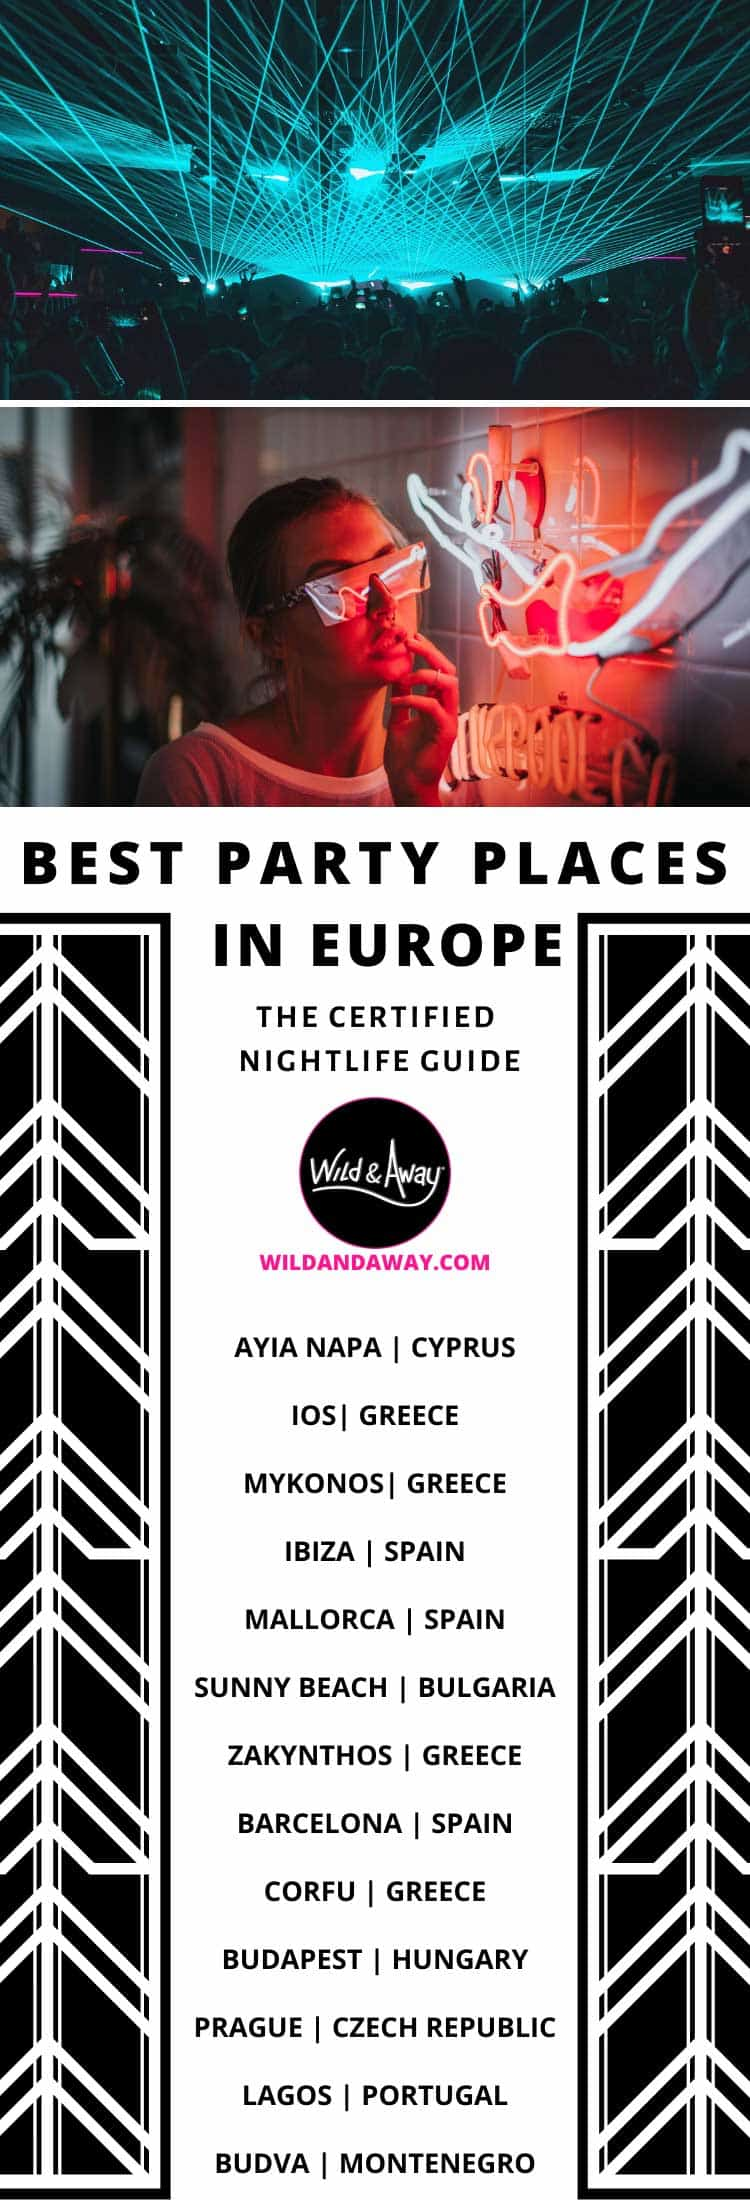 BEST PARTY PLACES IN EUROPE _ EUROPE PARTY GUIDE PINTEREST 2